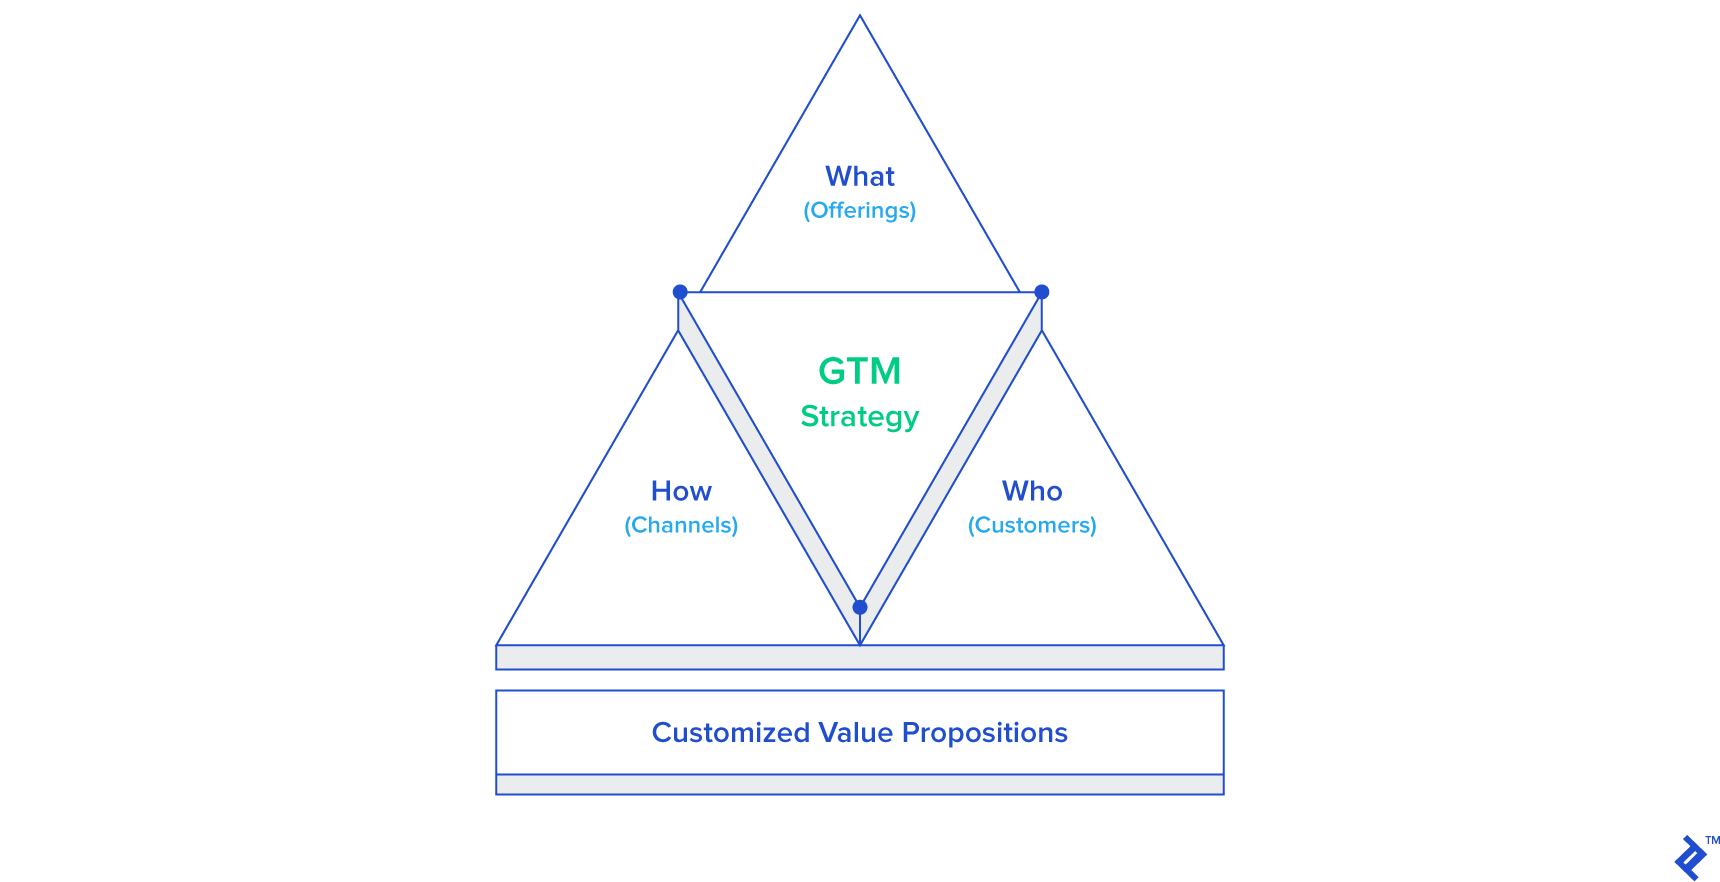 Diagram of who, what, how, and customized value propositions, the facets of a go to market strategy